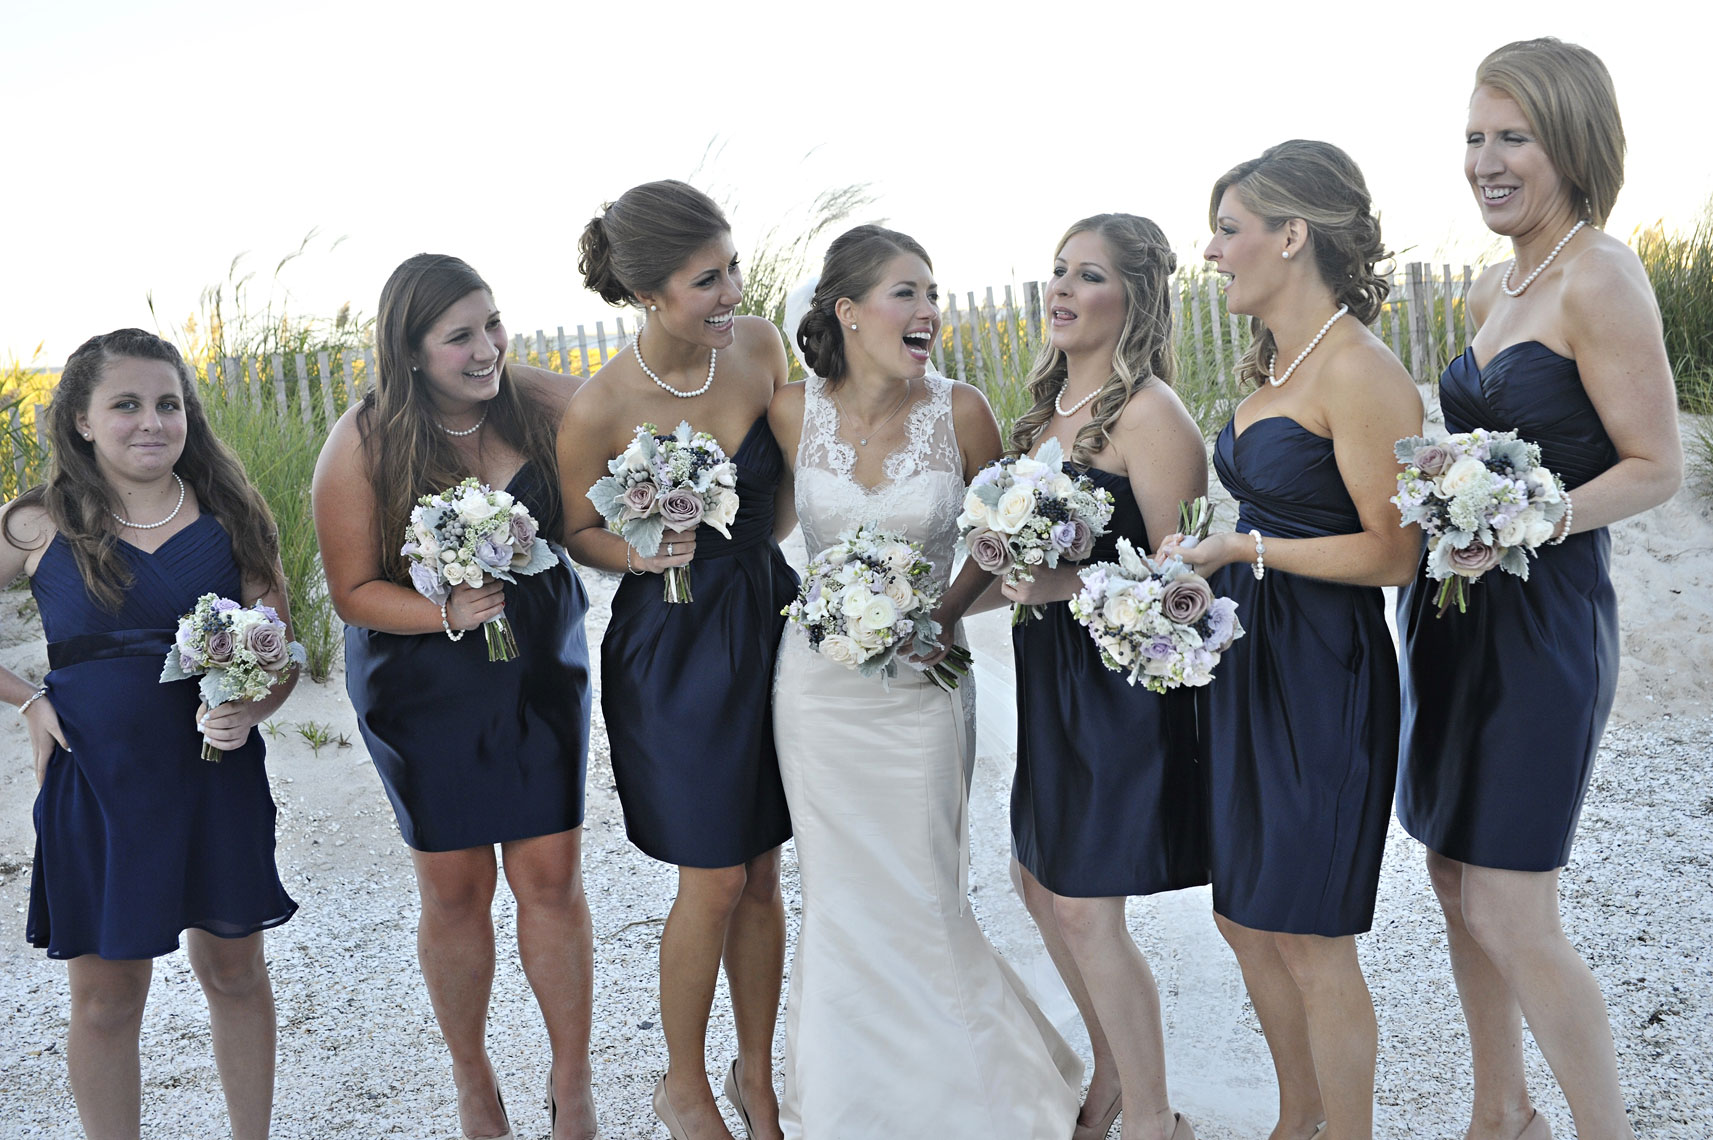 bonnetislandwedding-036